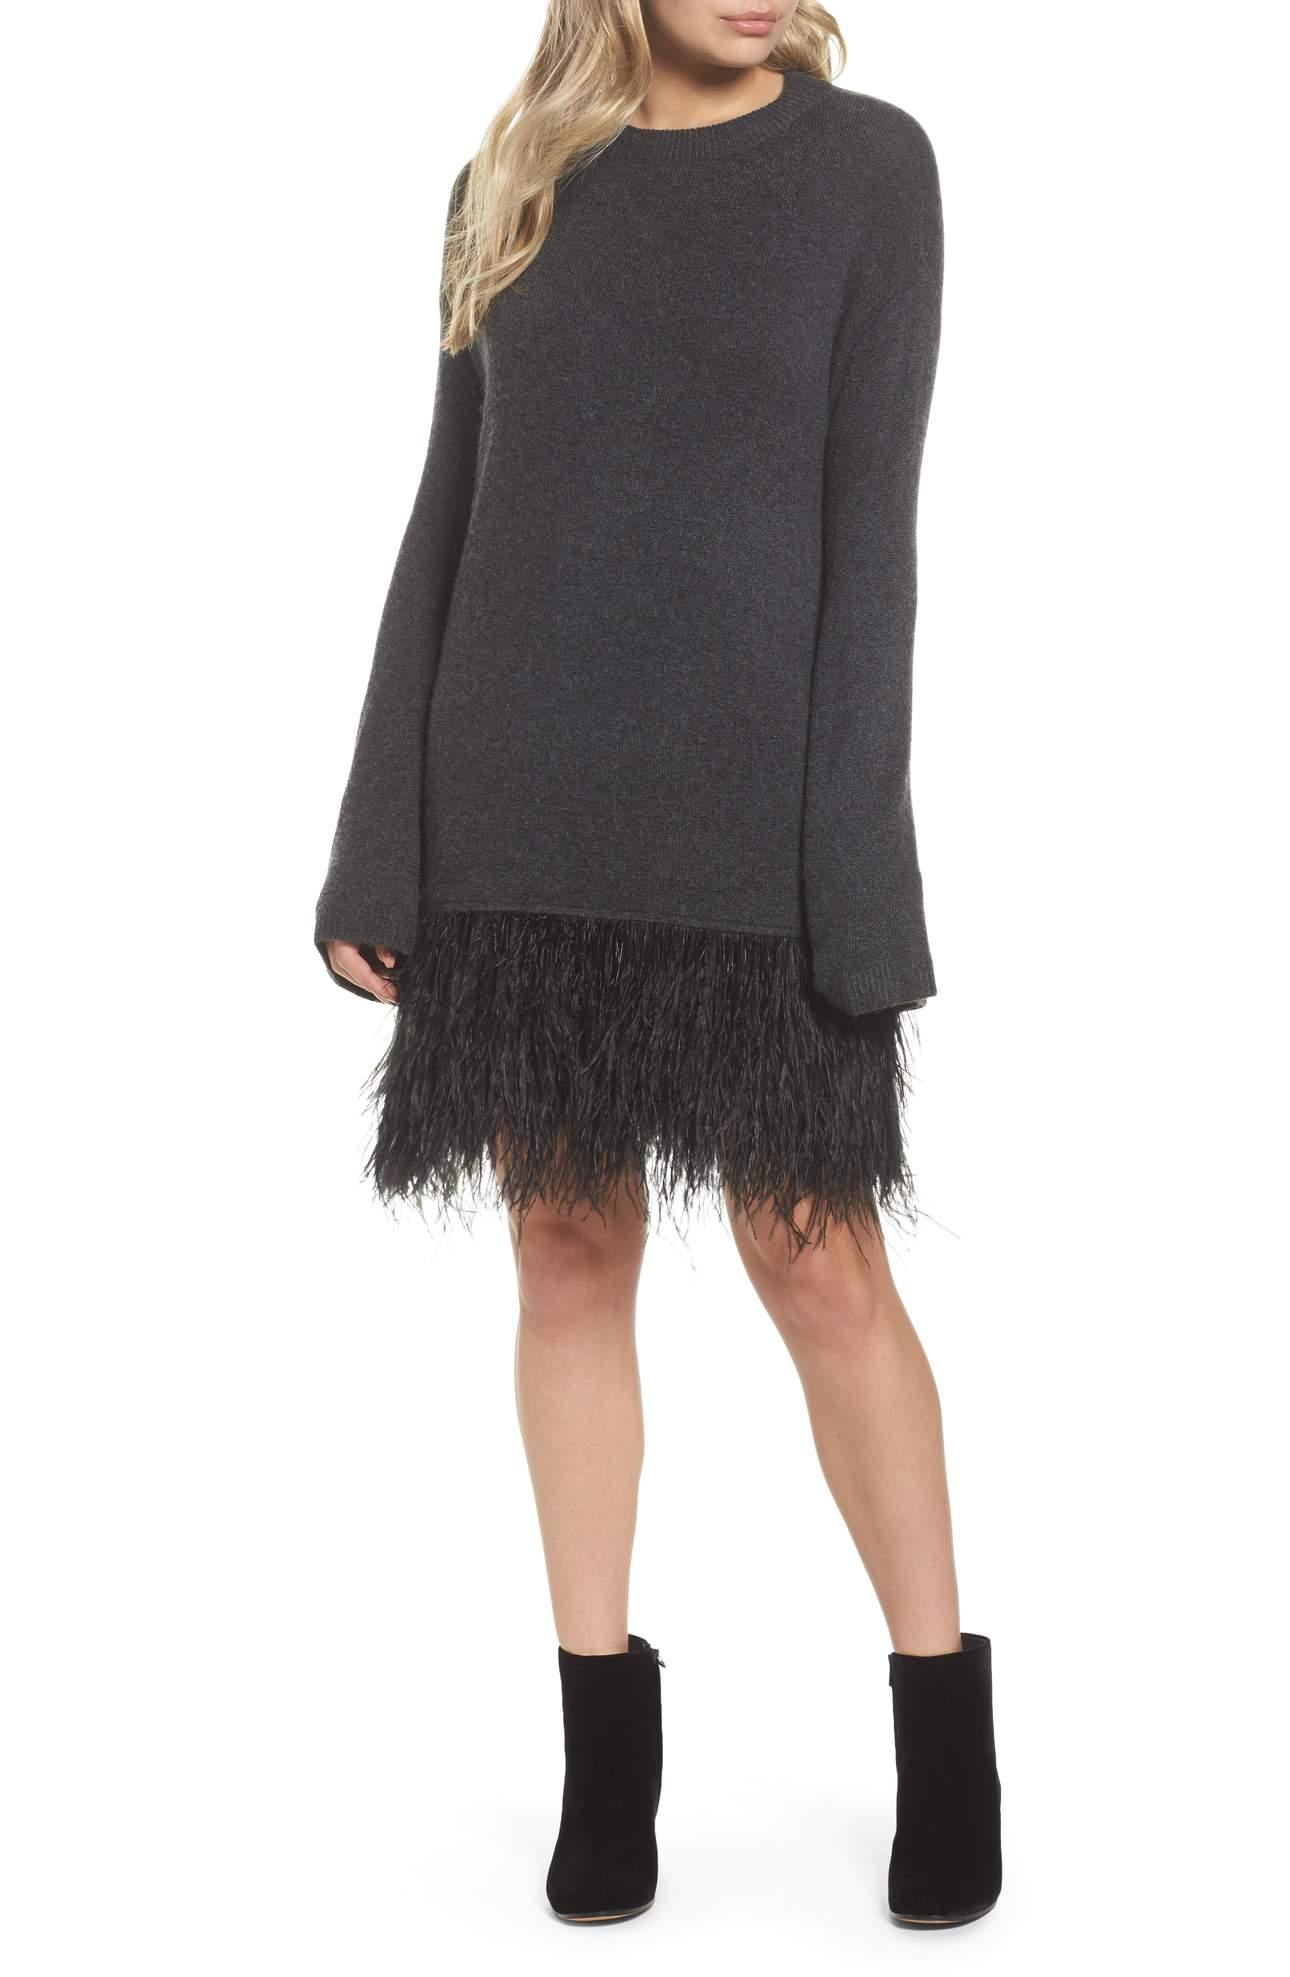 <p>Feather Hem Sweatshirt Dress - $149. Don't disappoint your party people; arrive in your finest feathers wearing this sweatshirt dress with a hem of ostrich plumes. Pair with a total GLAM chunky necklace and red lips. (Image: Nordstrom){&amp;nbsp;}</p><p></p>